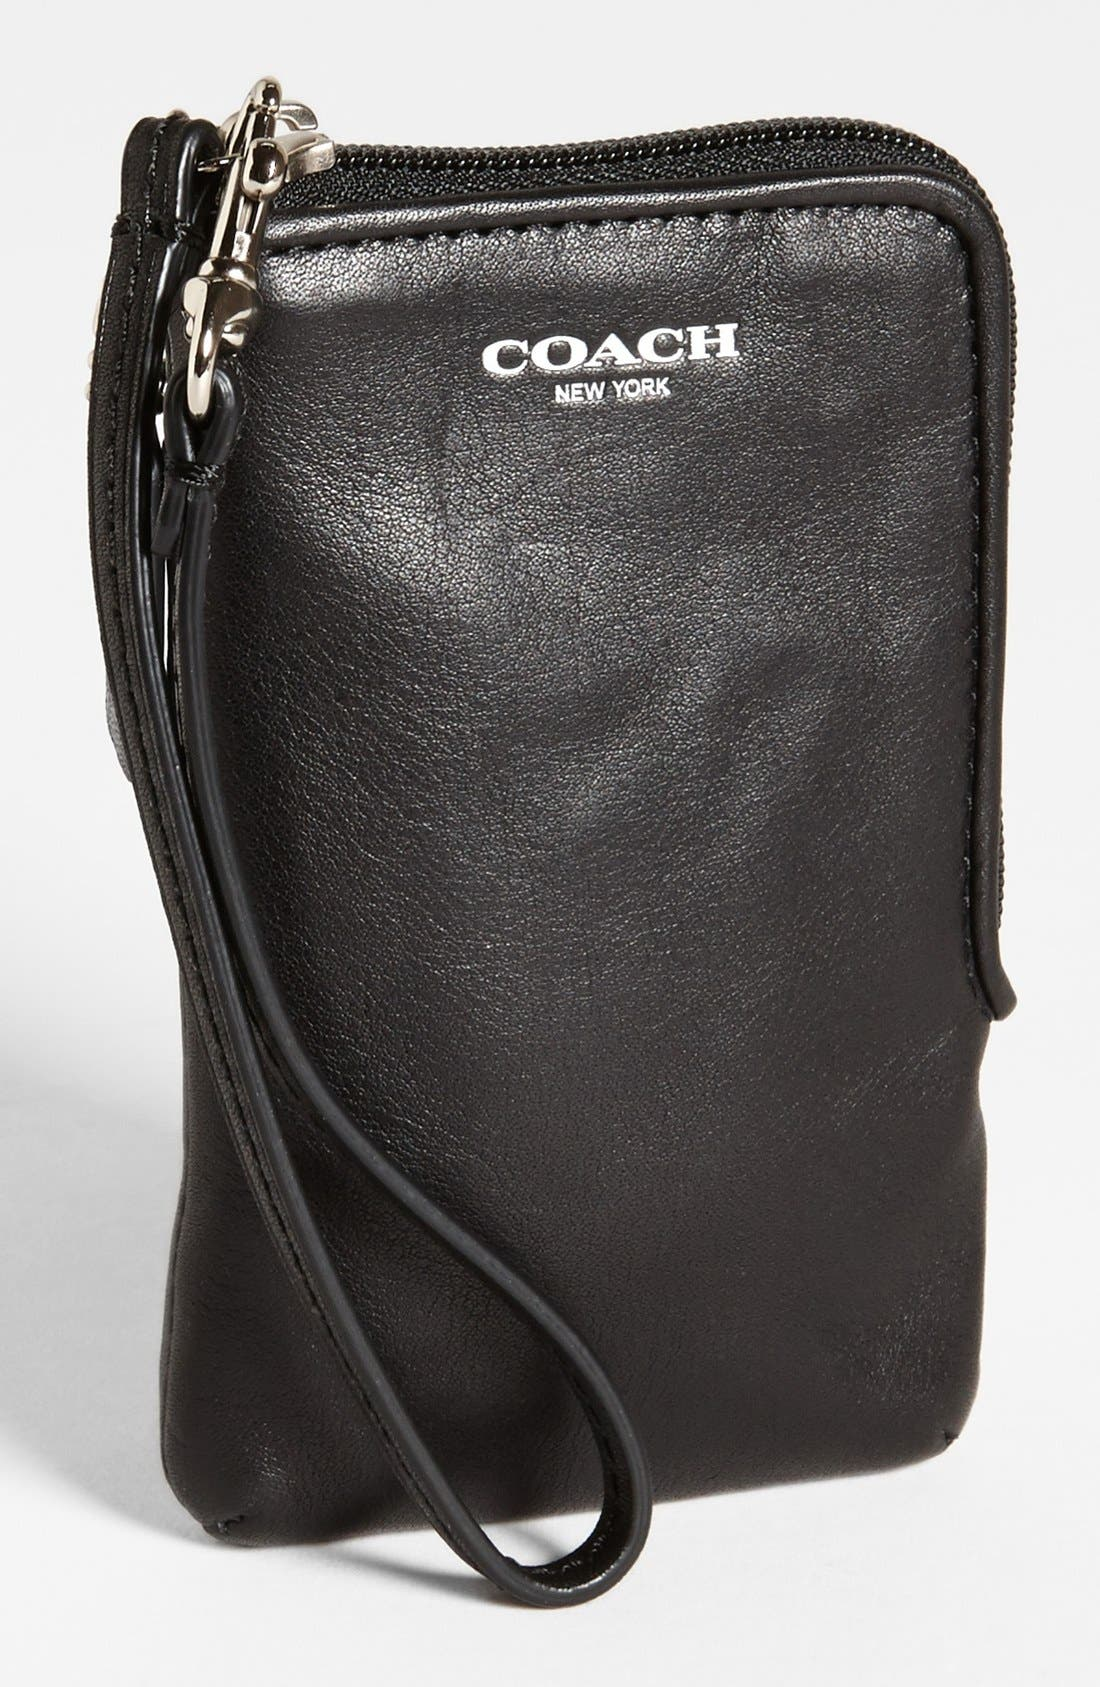 Main Image - COACH 'Legacy' Leather Phone Wristlet